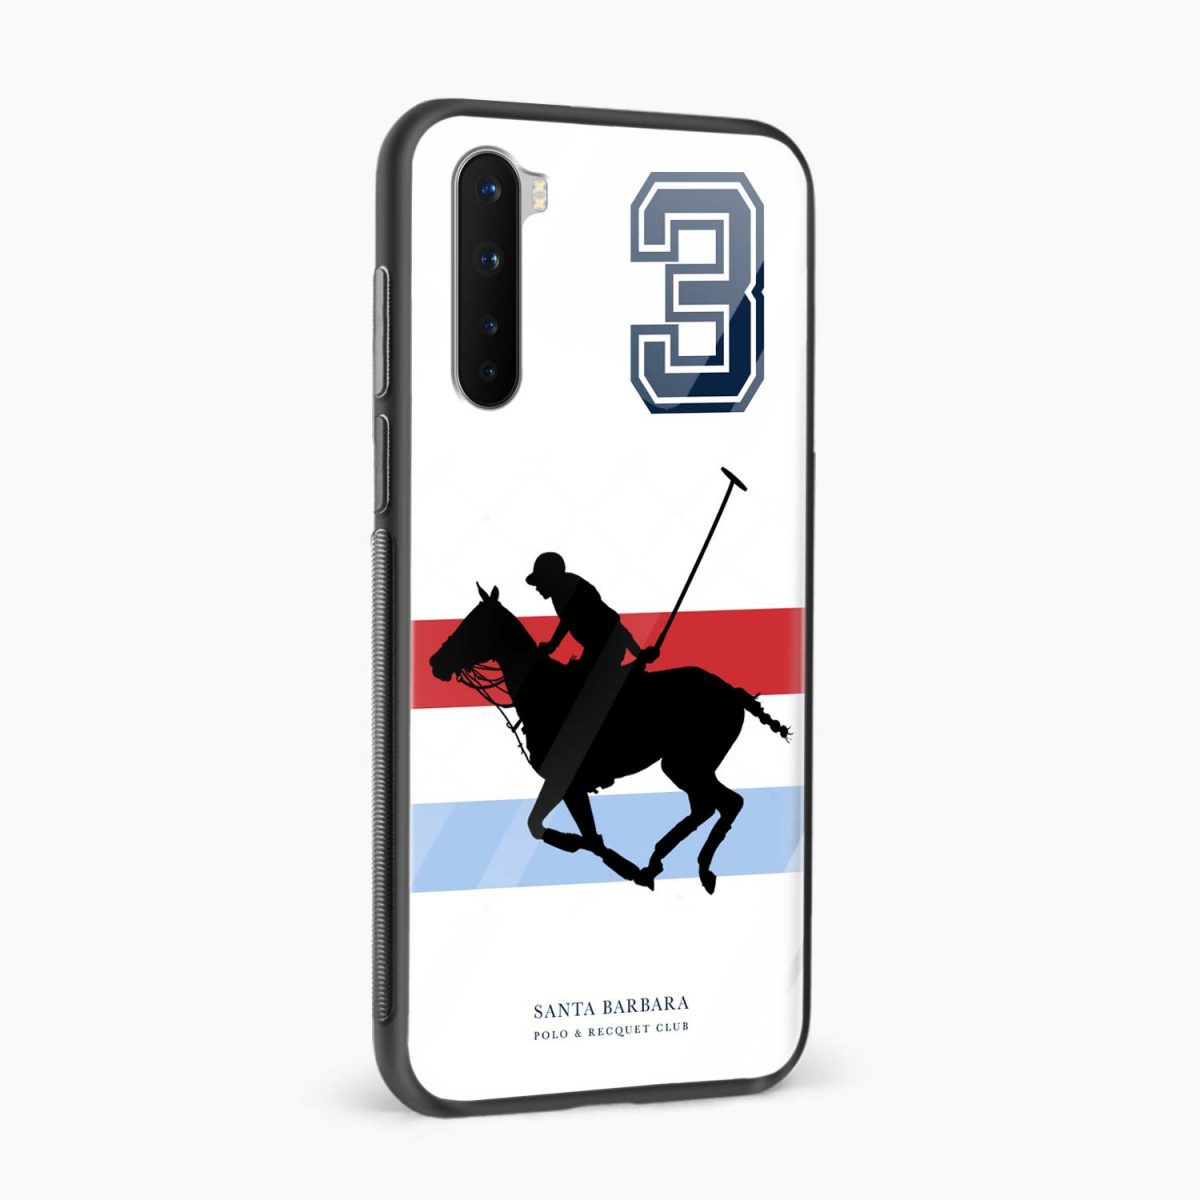 sant barbara polo side view oneplus nord back cover